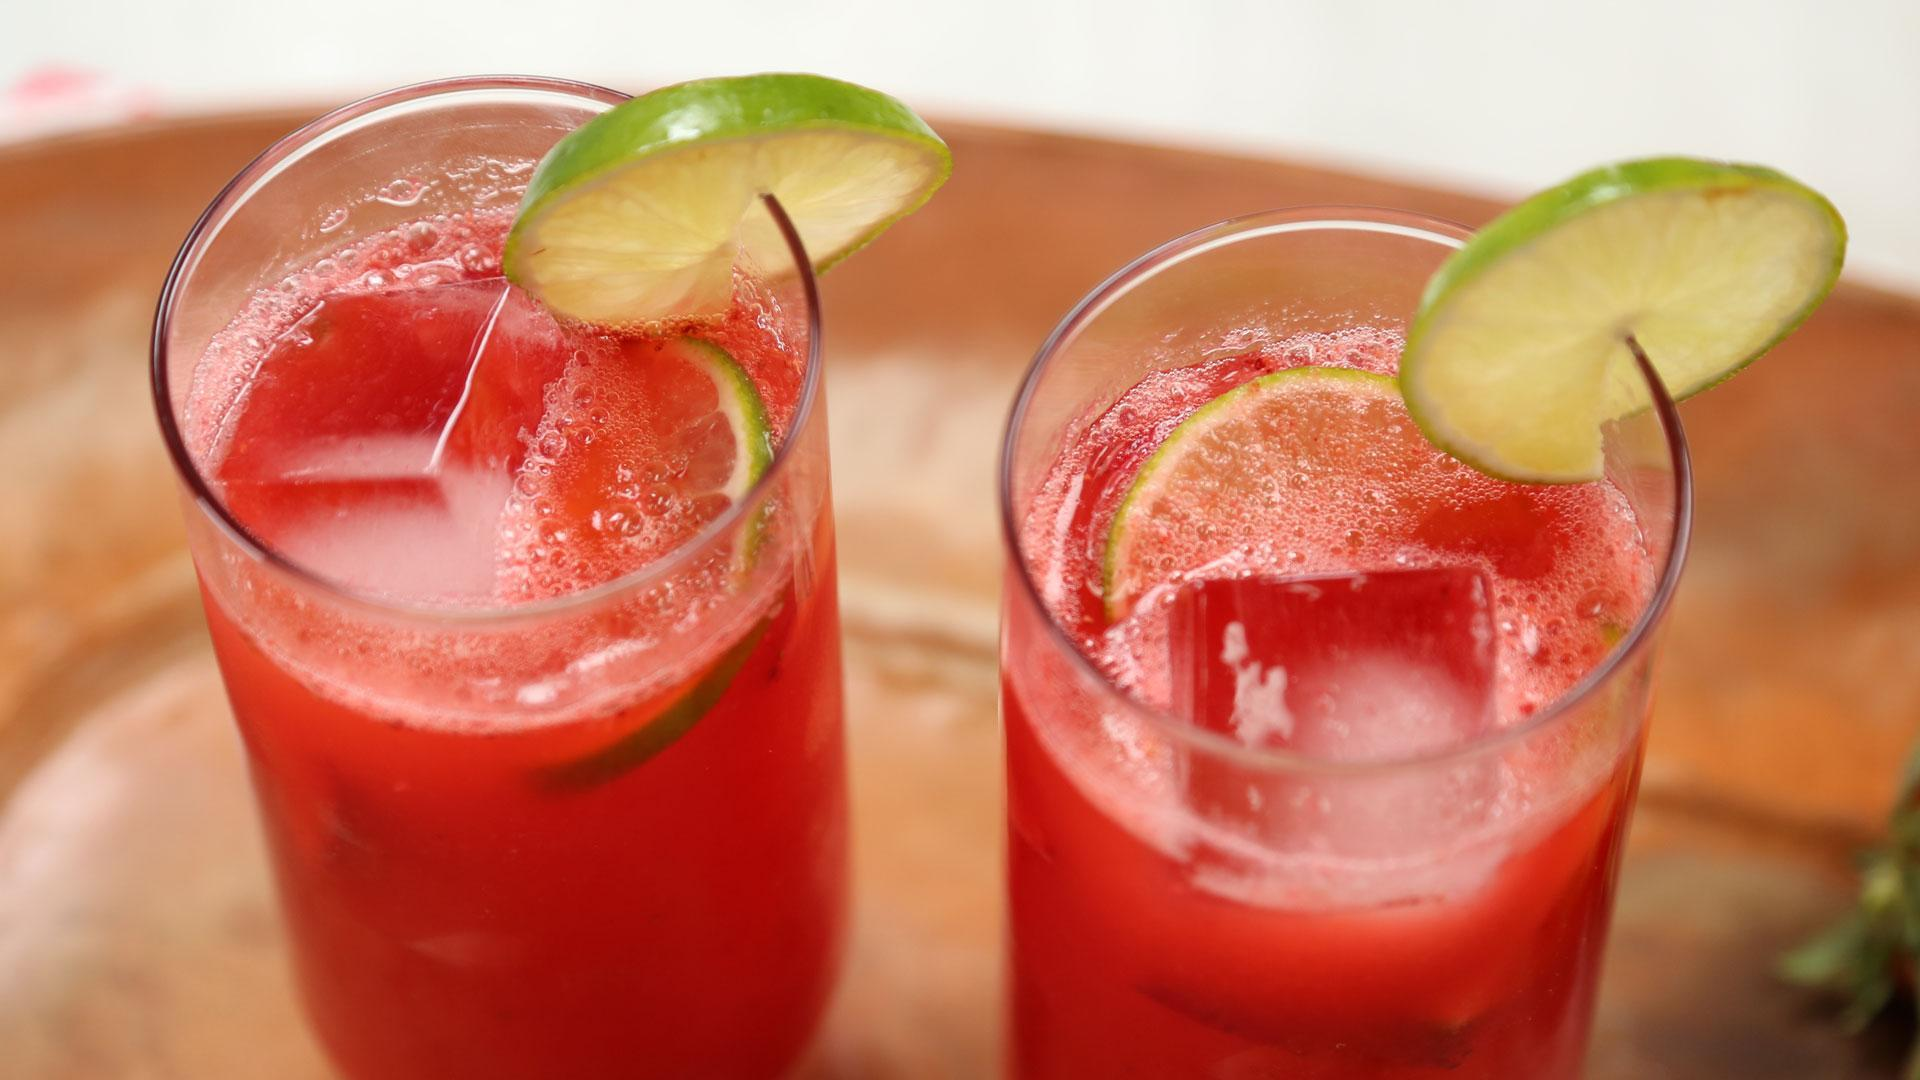 How to Make Strawberry Margarita Spritzers